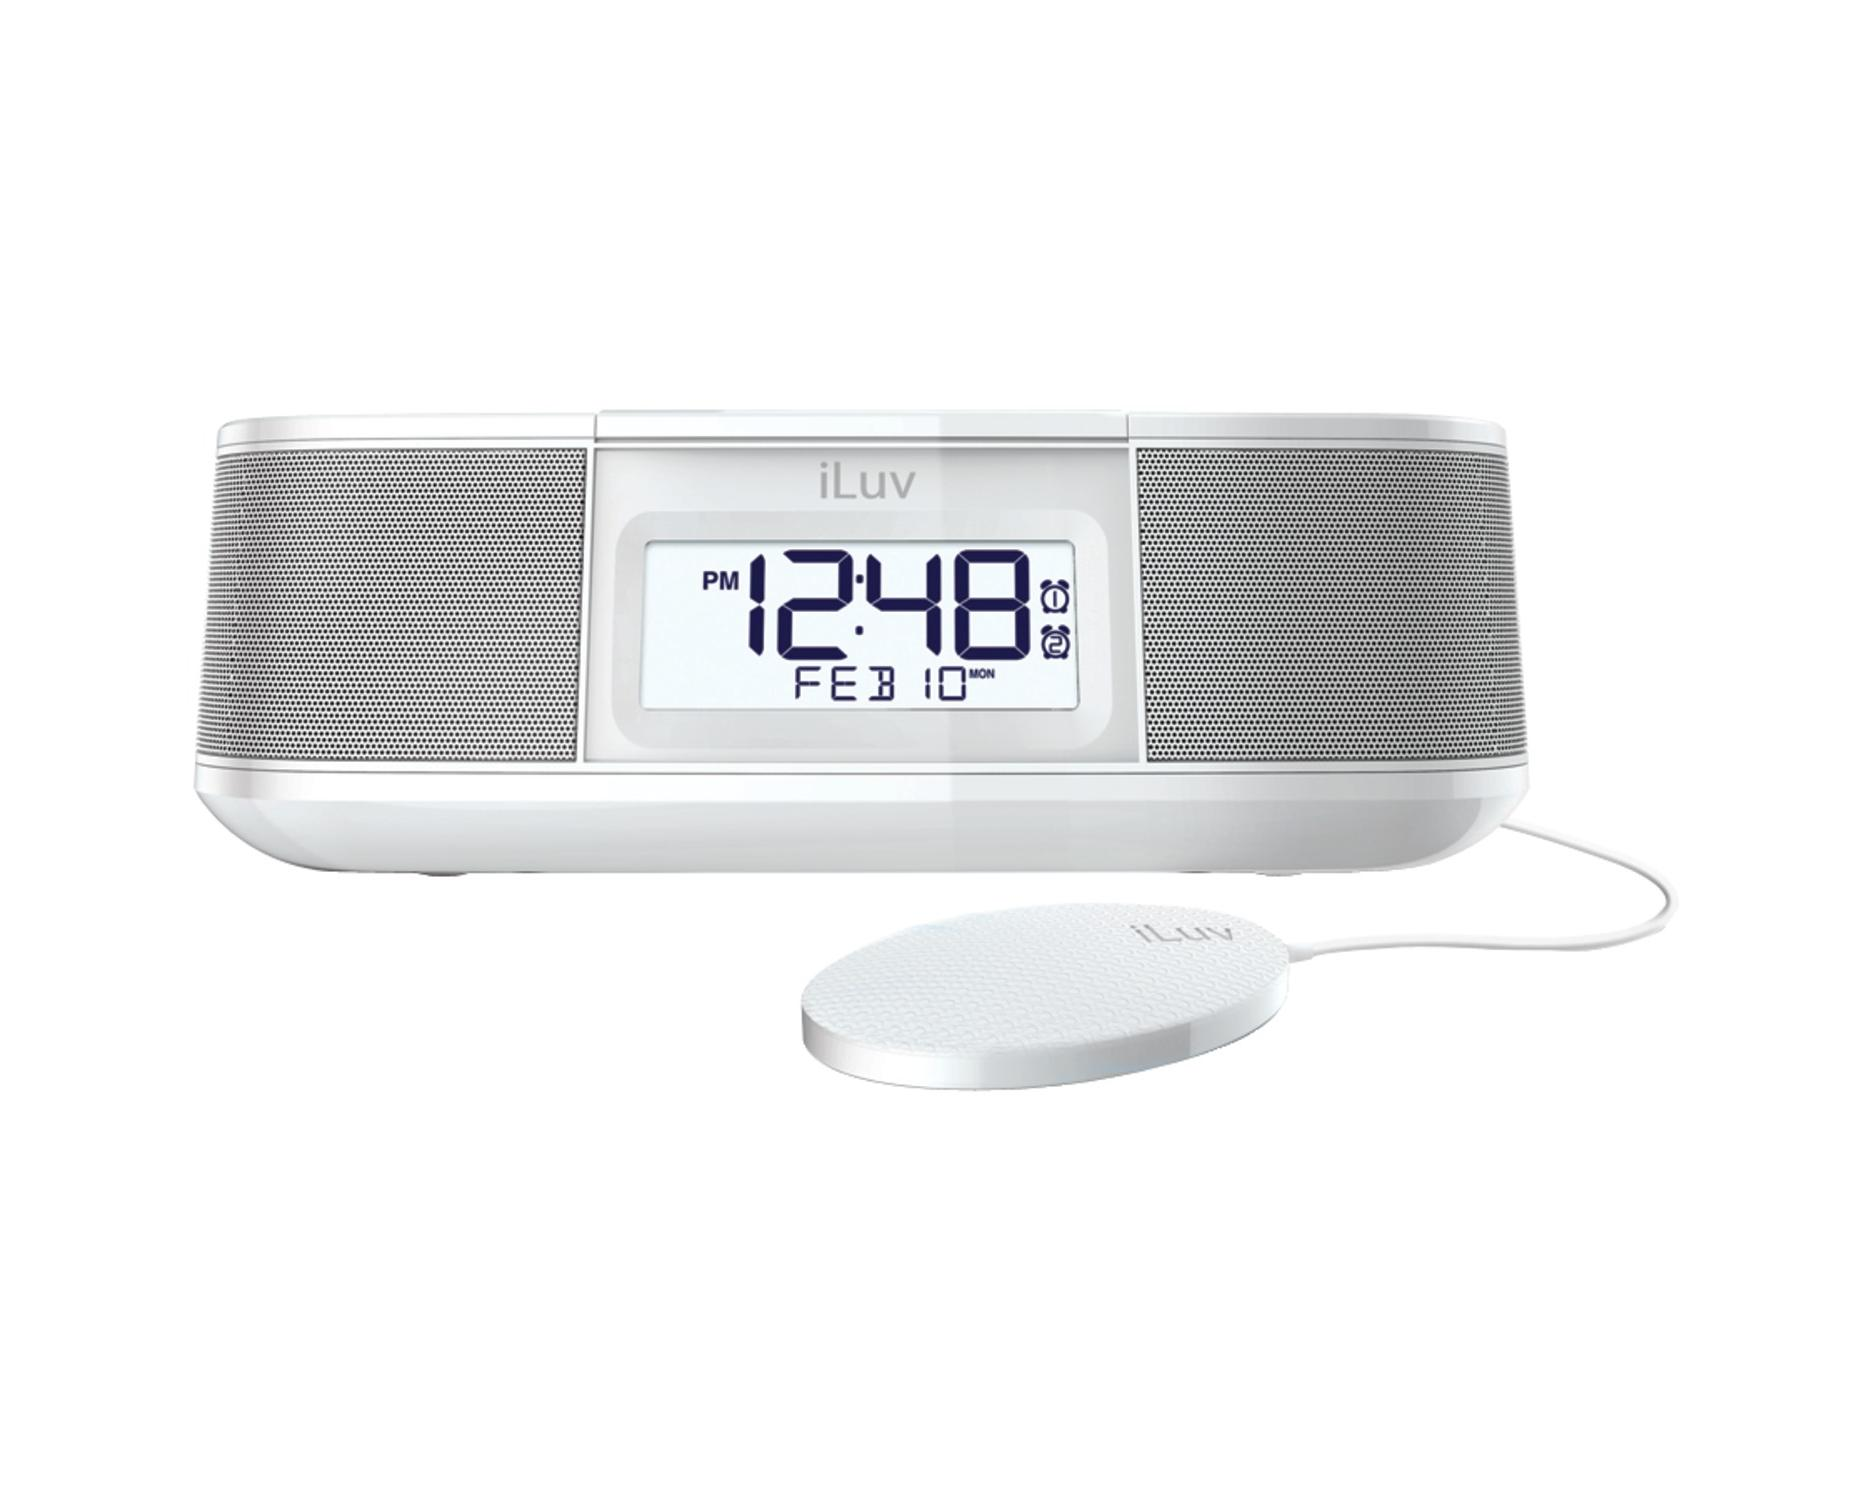 iluv tsmicroulwh timeshaker micro bluetooth dual alarm clock with pillow shaker white